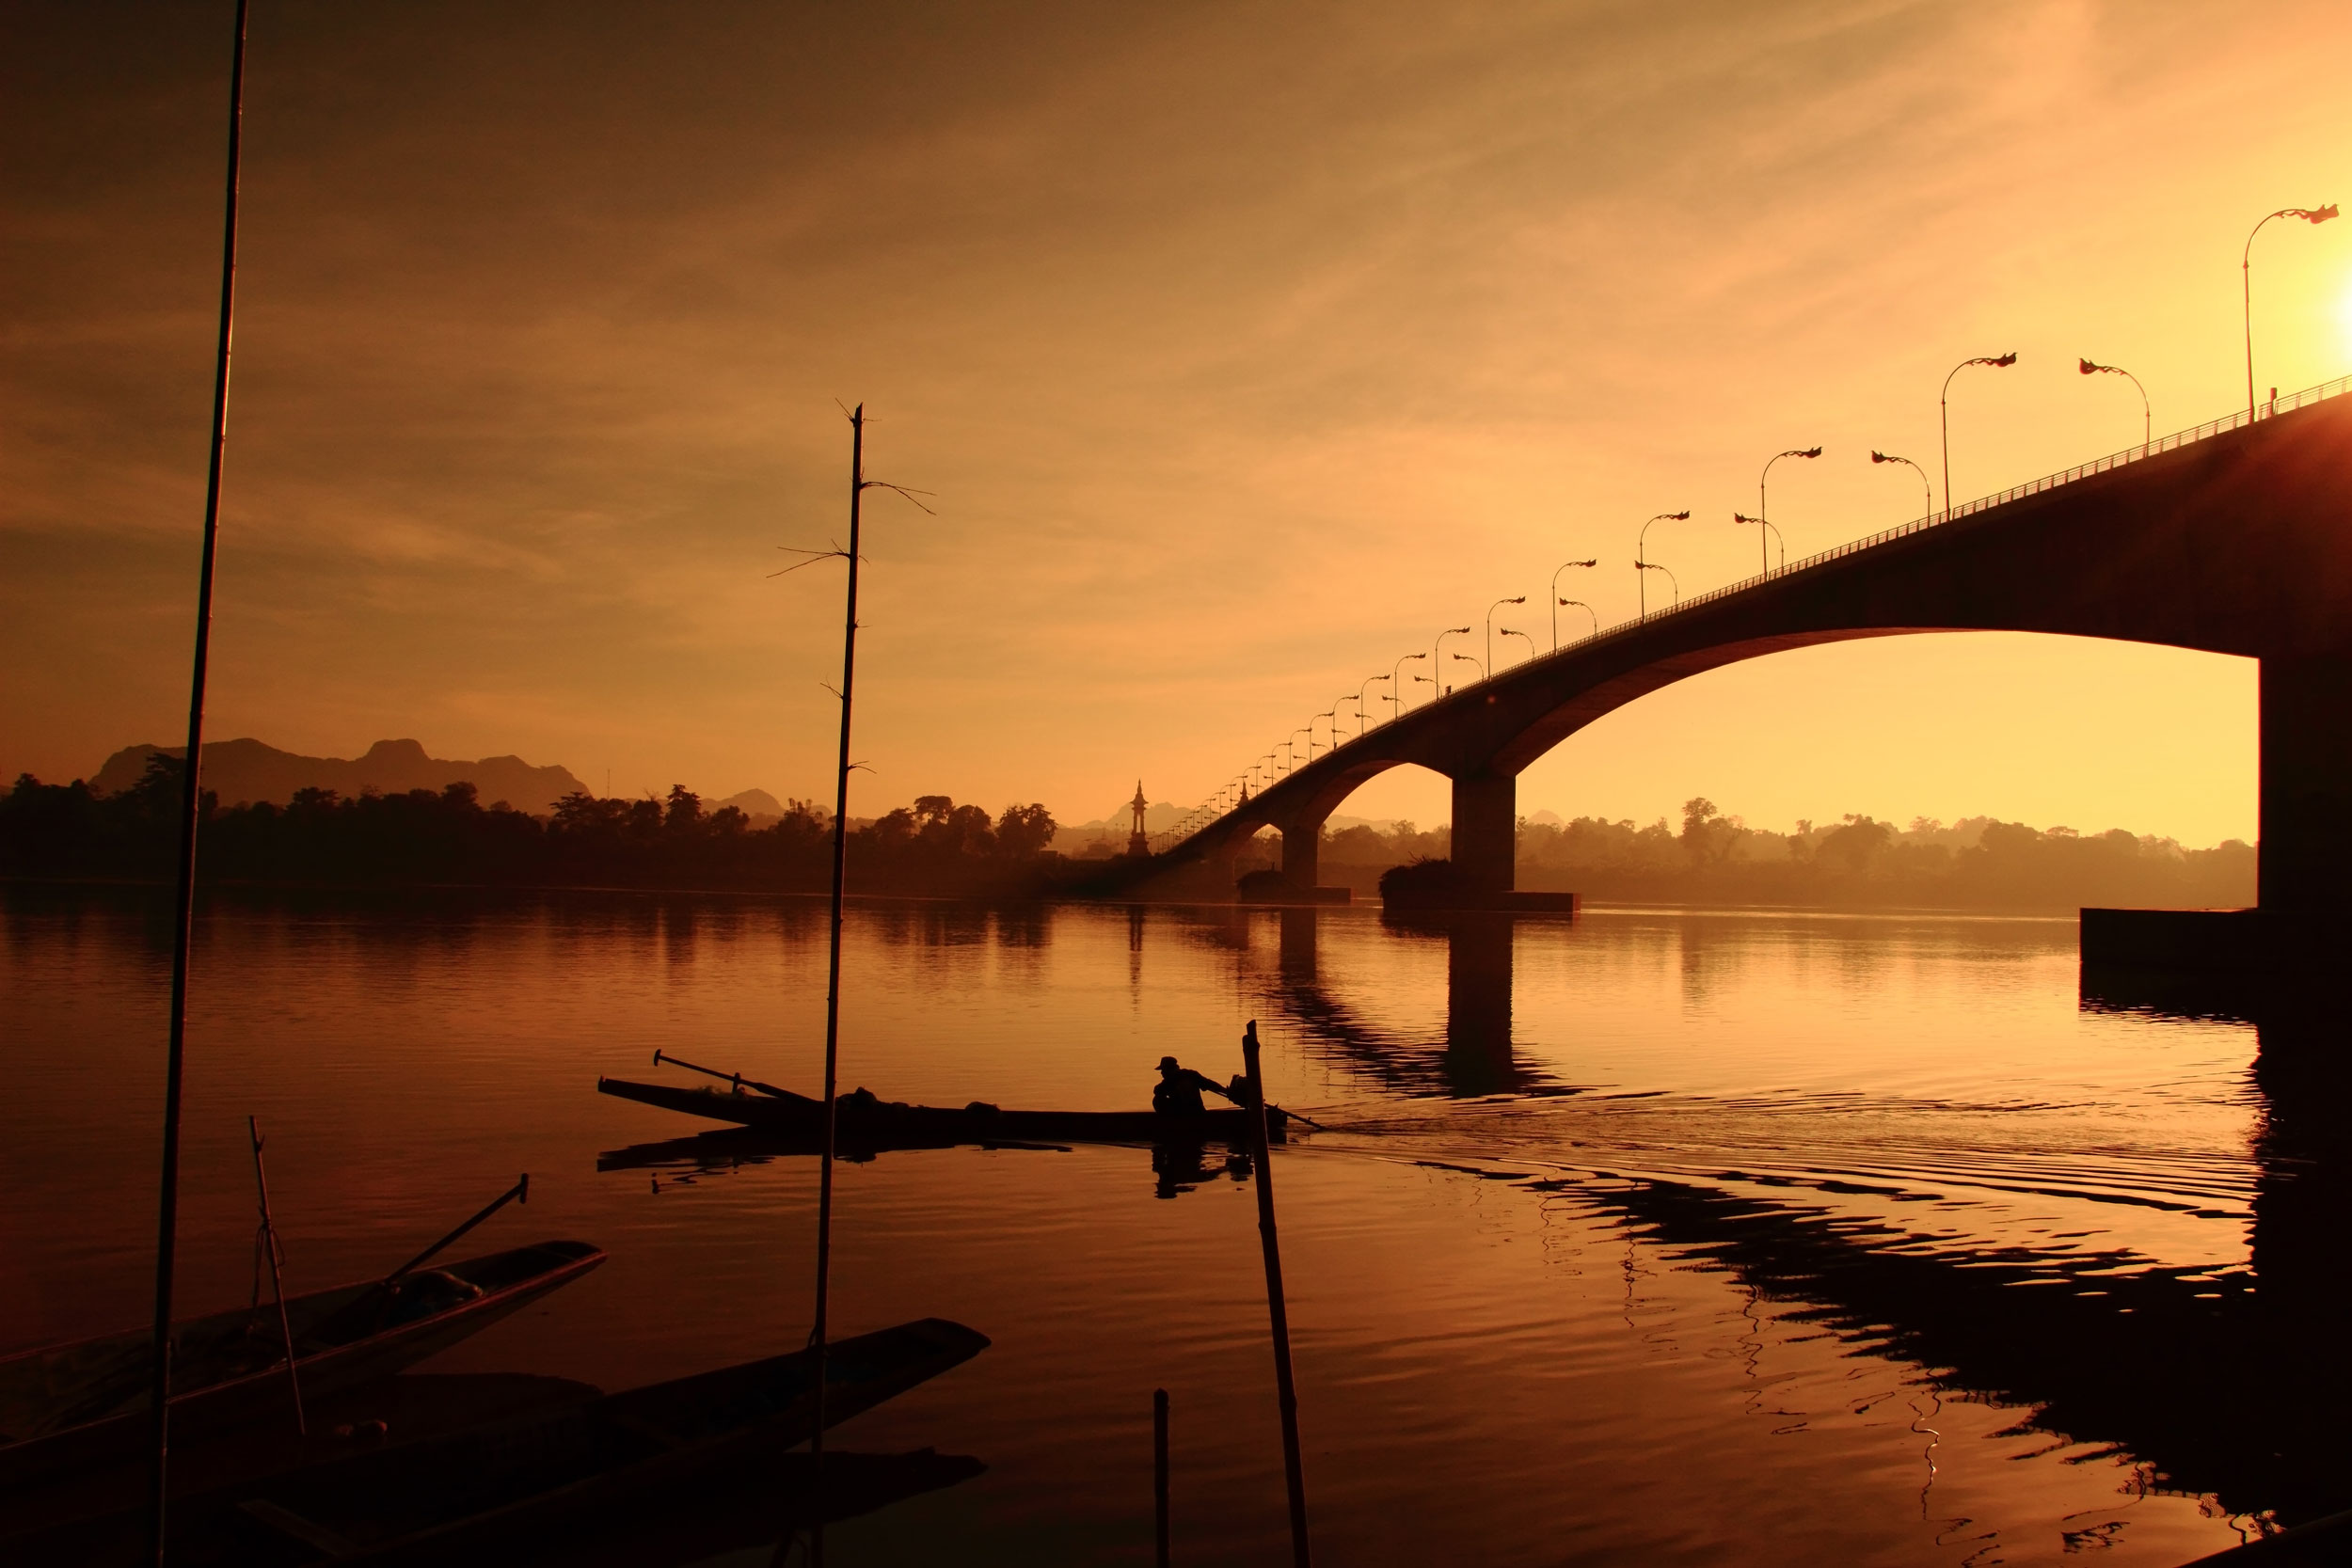 Bridge-over-the-Mekong-River-at-three-Thailand-Laos__5best_tropicallife